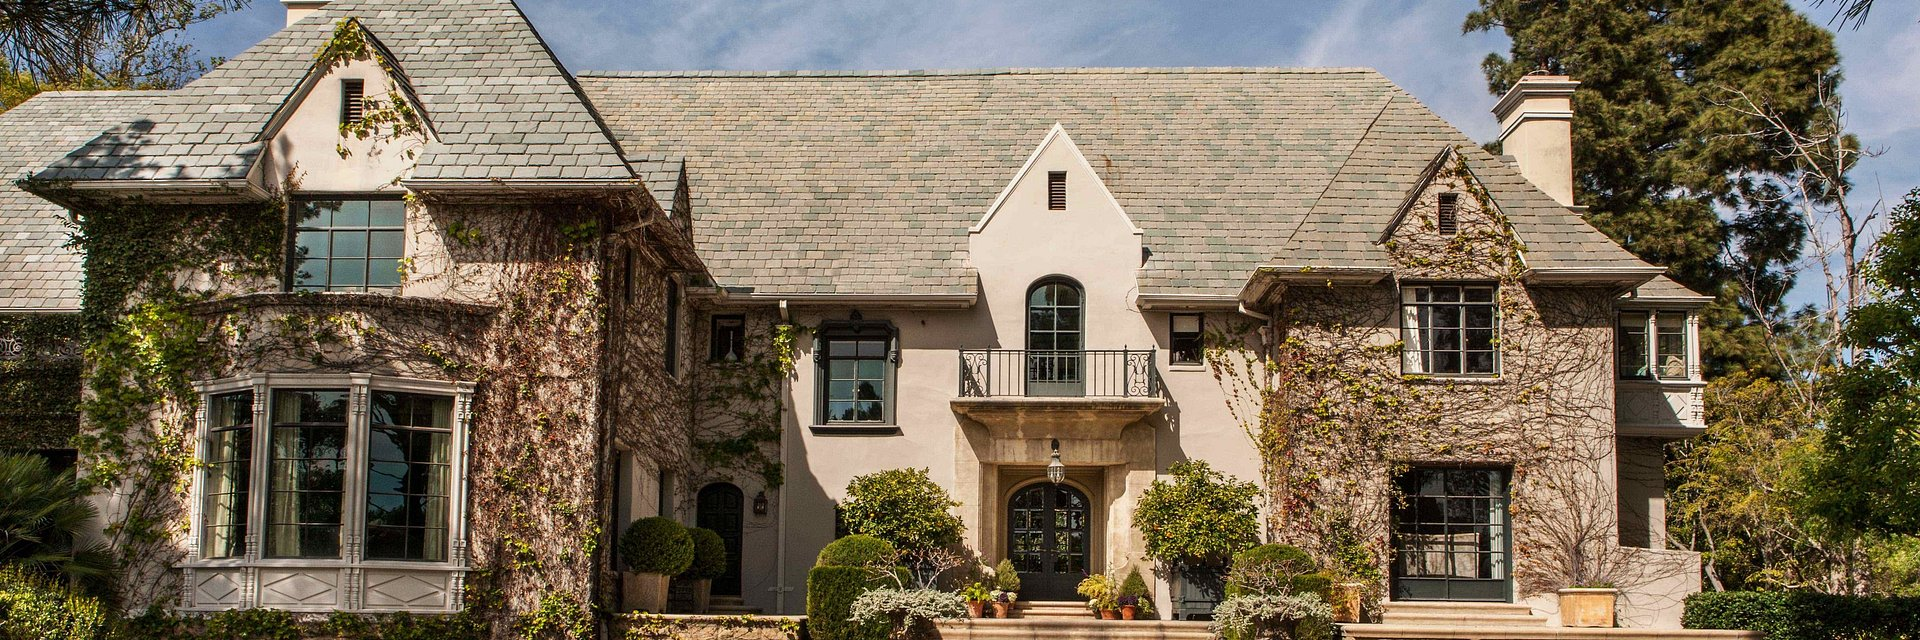 Coldwell Banker Residential Brokerage Lists Los Angeles Property for $36 Million